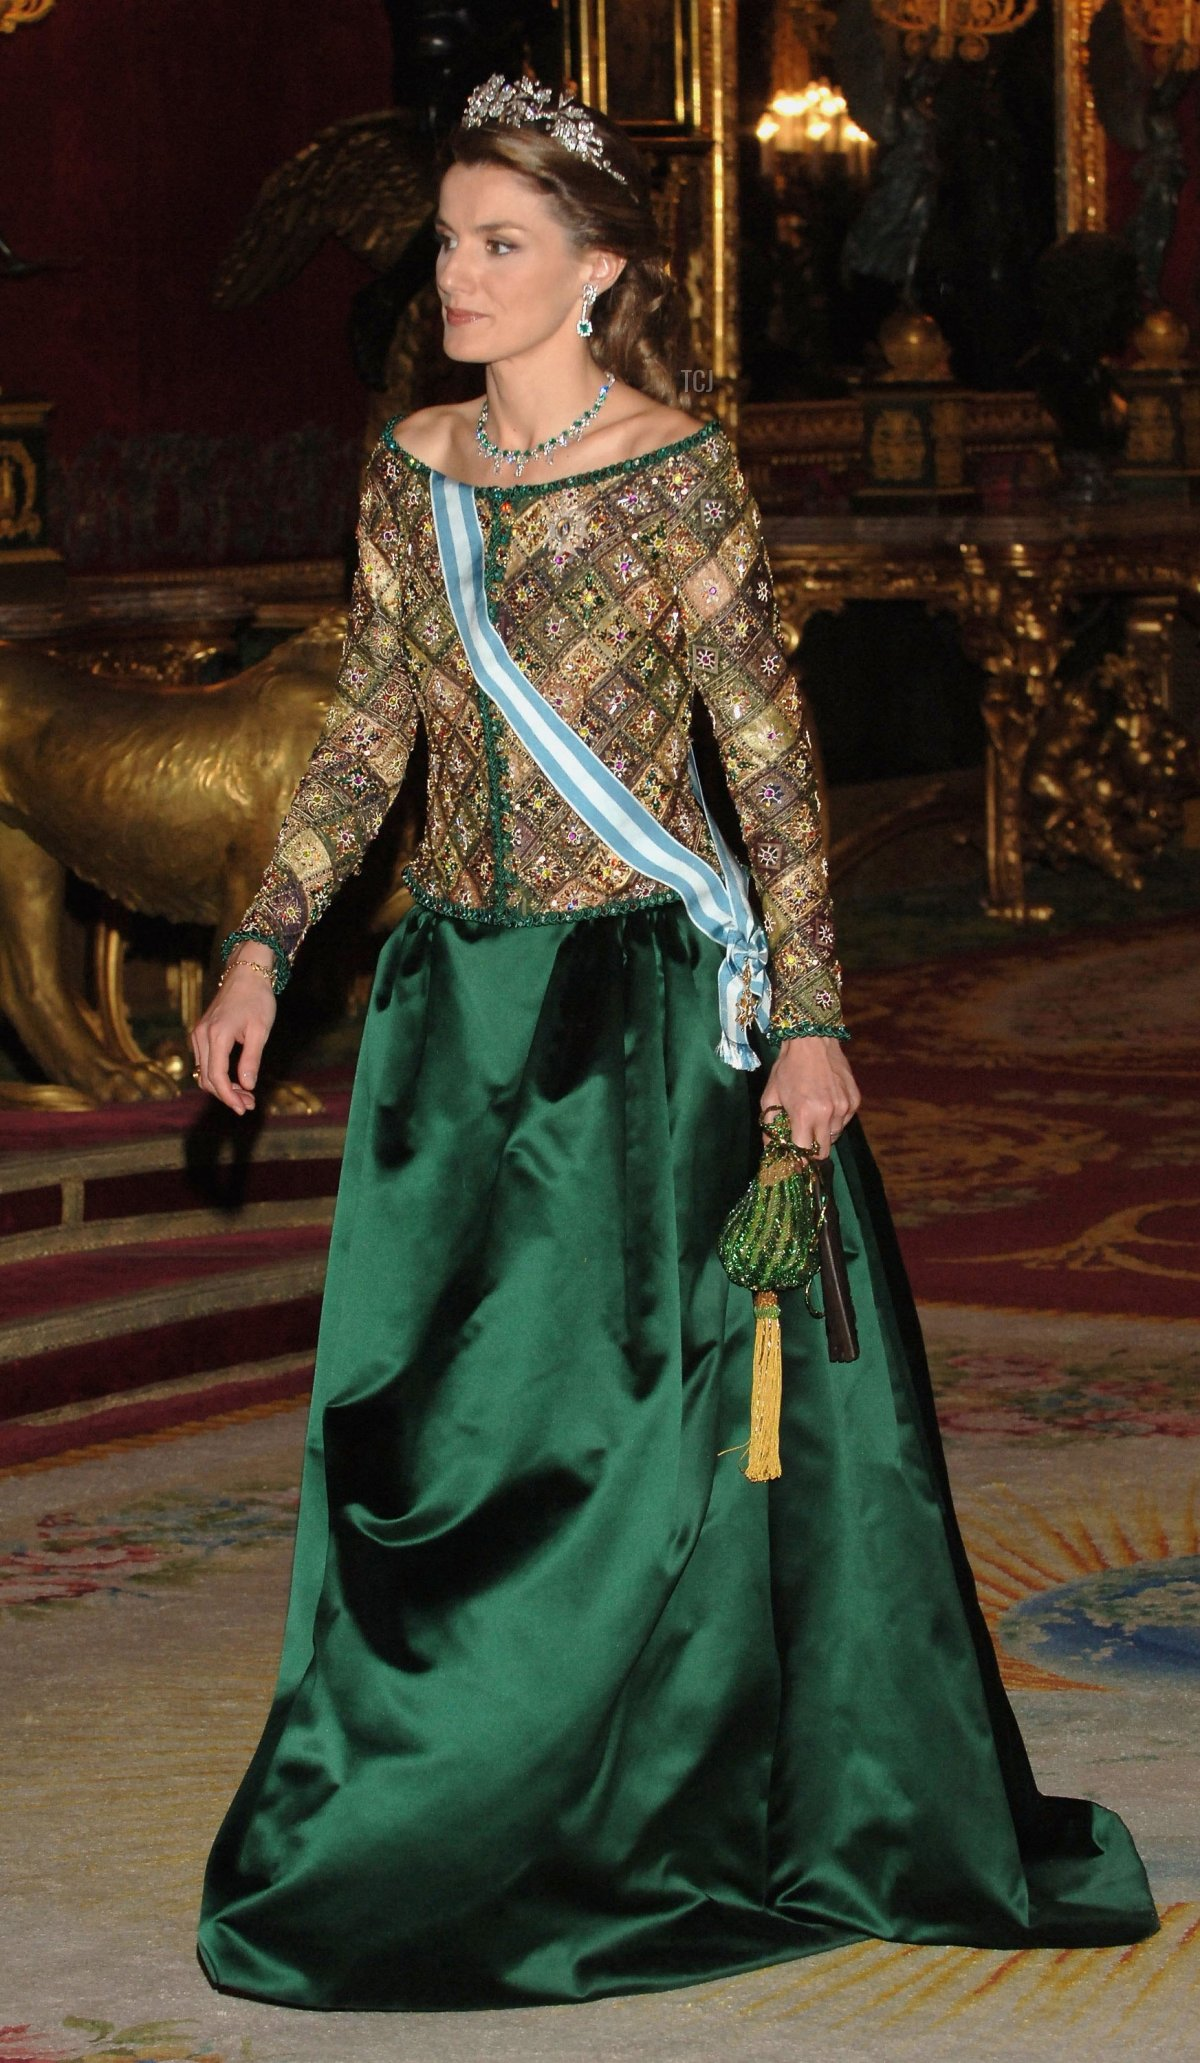 Princess Letizia of Spain attends an official dinner in honour of Russian President Vladimir Putin at the Royal Palace, on February 8, 2006 in Madrid, Spain